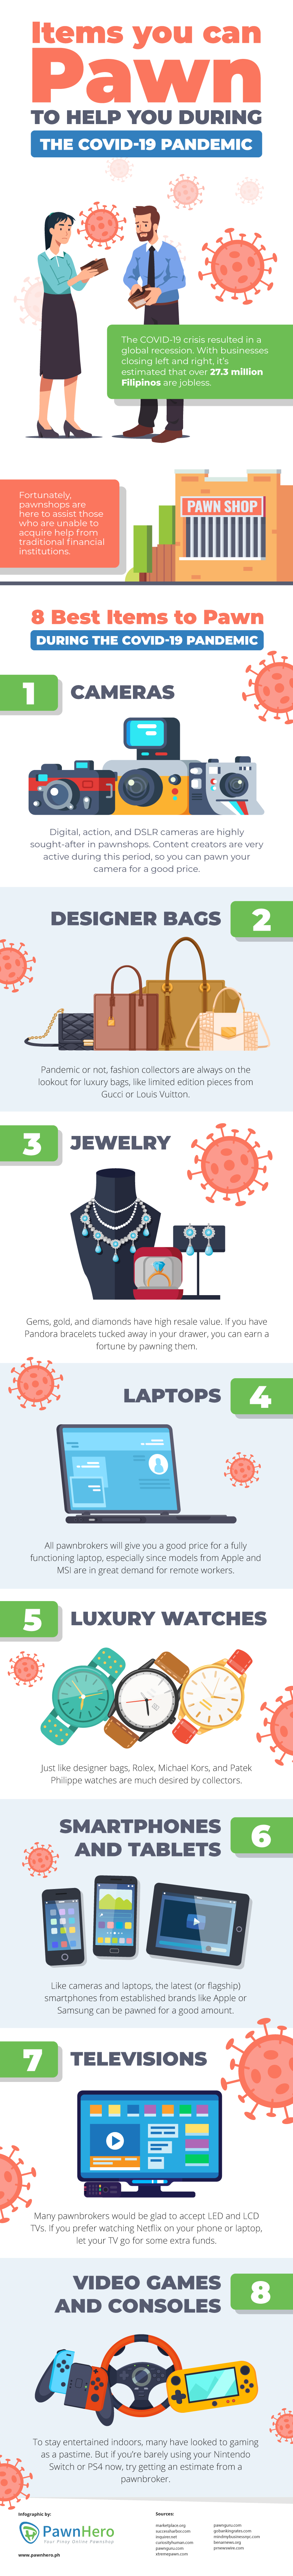 [Infographic] Items You Can Pawn to Help You During the COVID-19 Pandemic